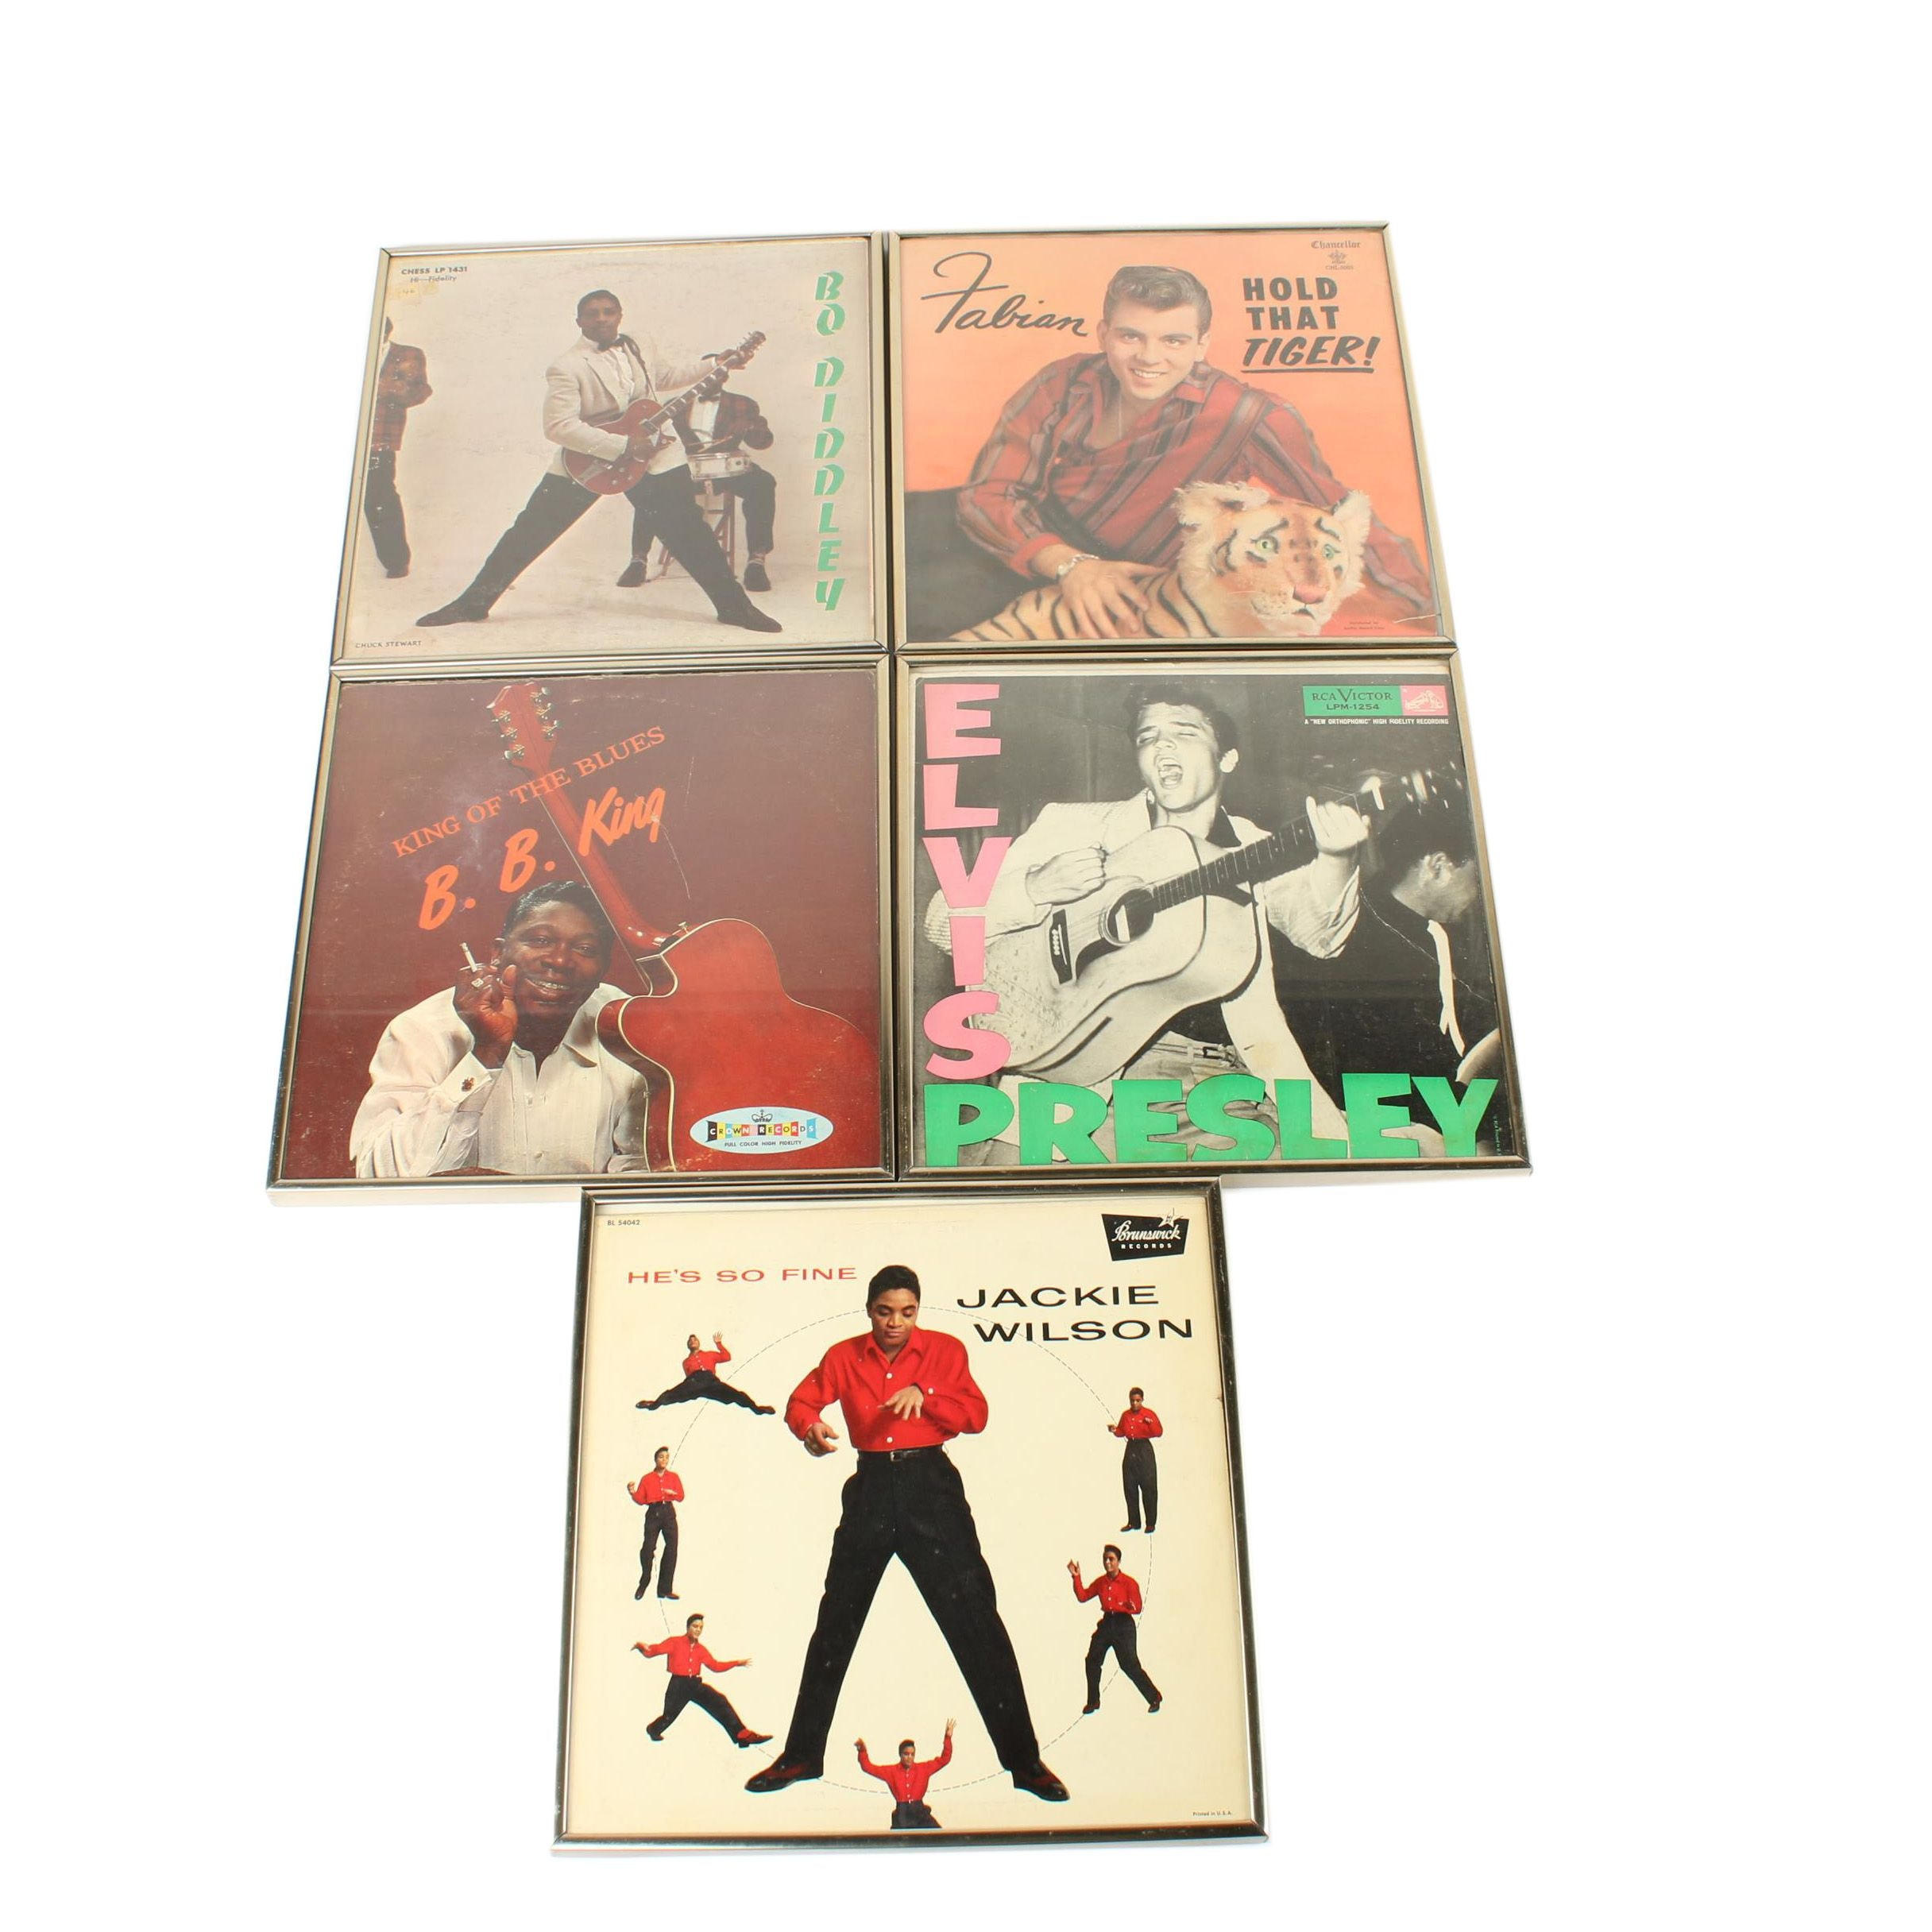 Framed Record Covers Including Elvis Presley, B.B. King, Jackie Wilson